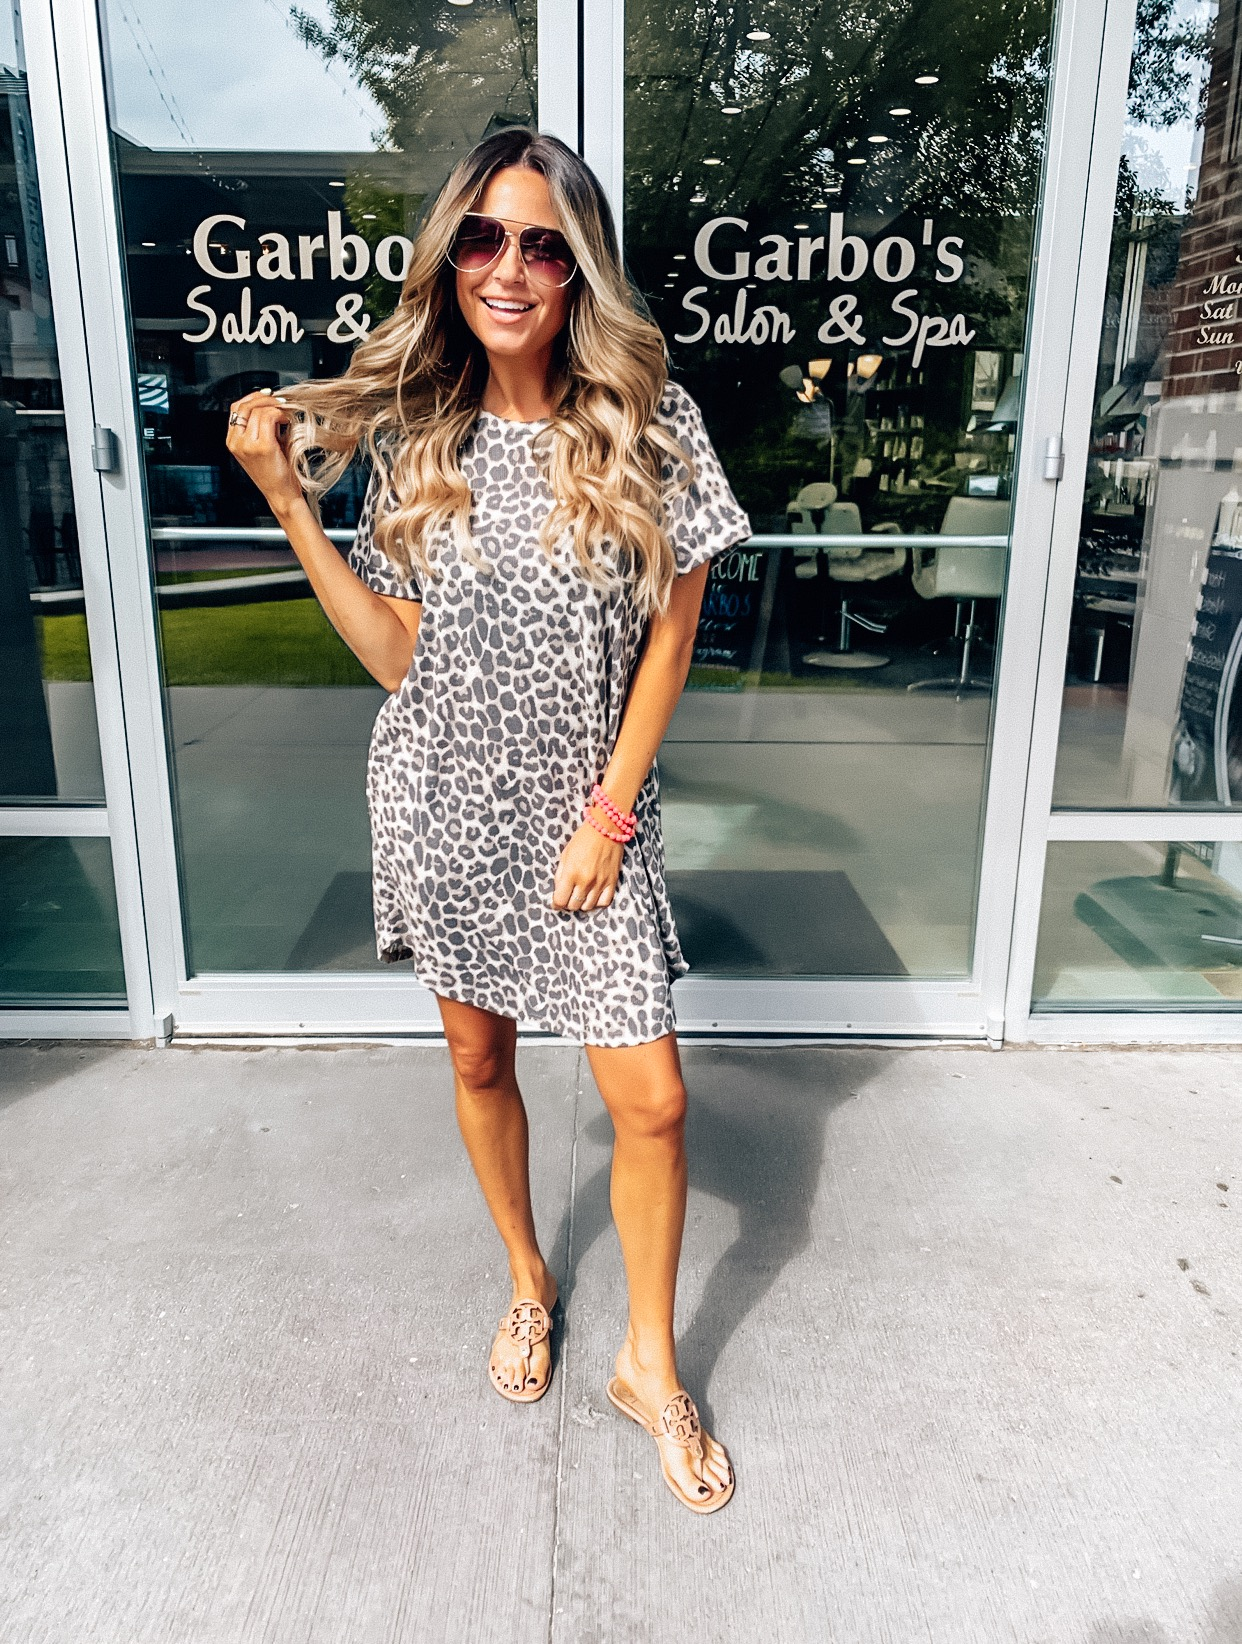 hand-tied extensions-garbo's-garbo's Omaha-garbo's village pointe-before and after-hair goals-hair transformation-hair before and after-sabby style-omaha blogger-8